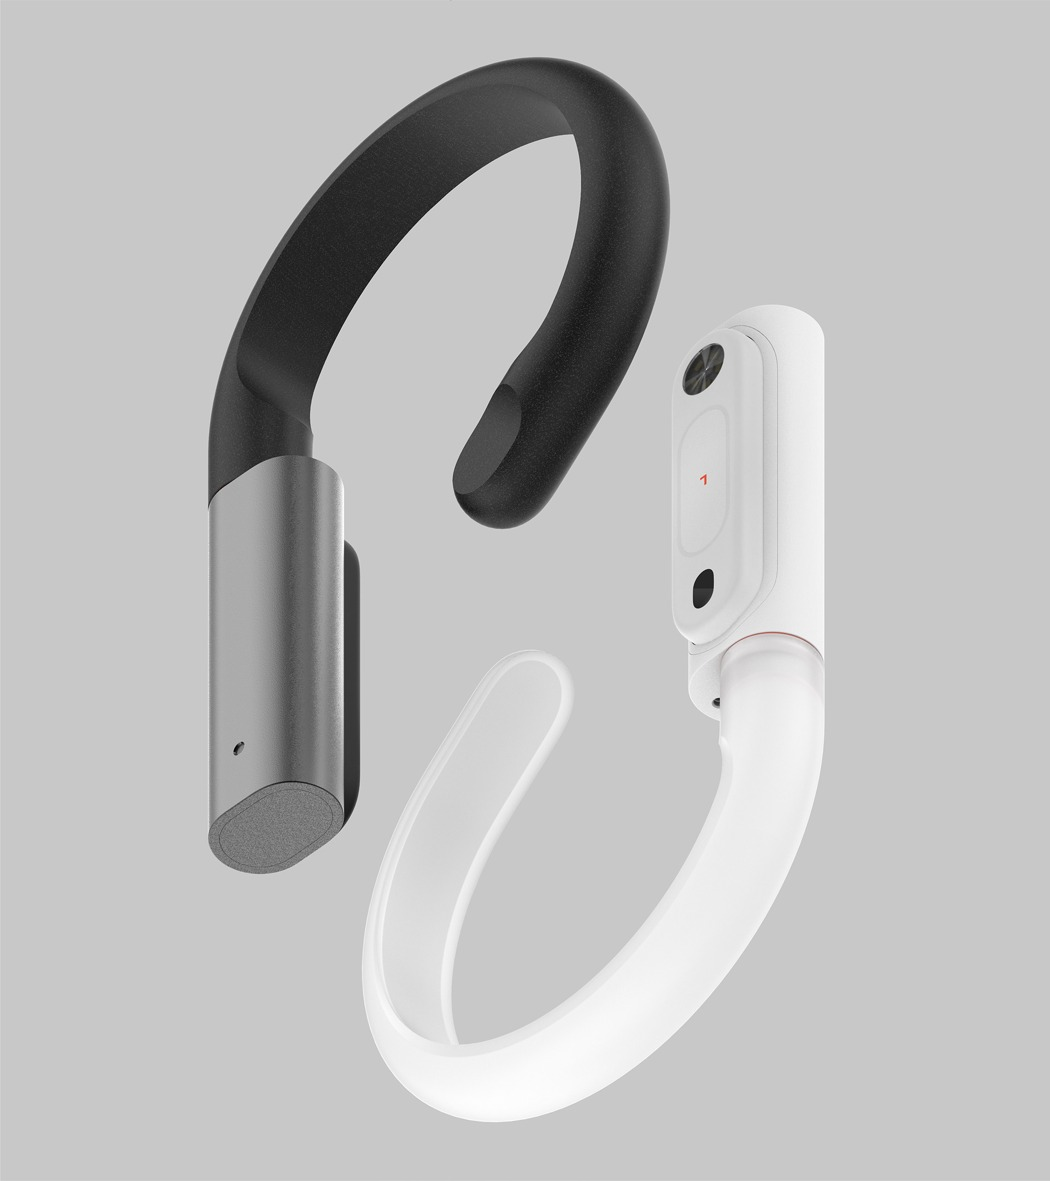 hight resolution of  bone conduction headphones with built in lte connectivity the concept builds upon the observation that more and more key features of smartphones